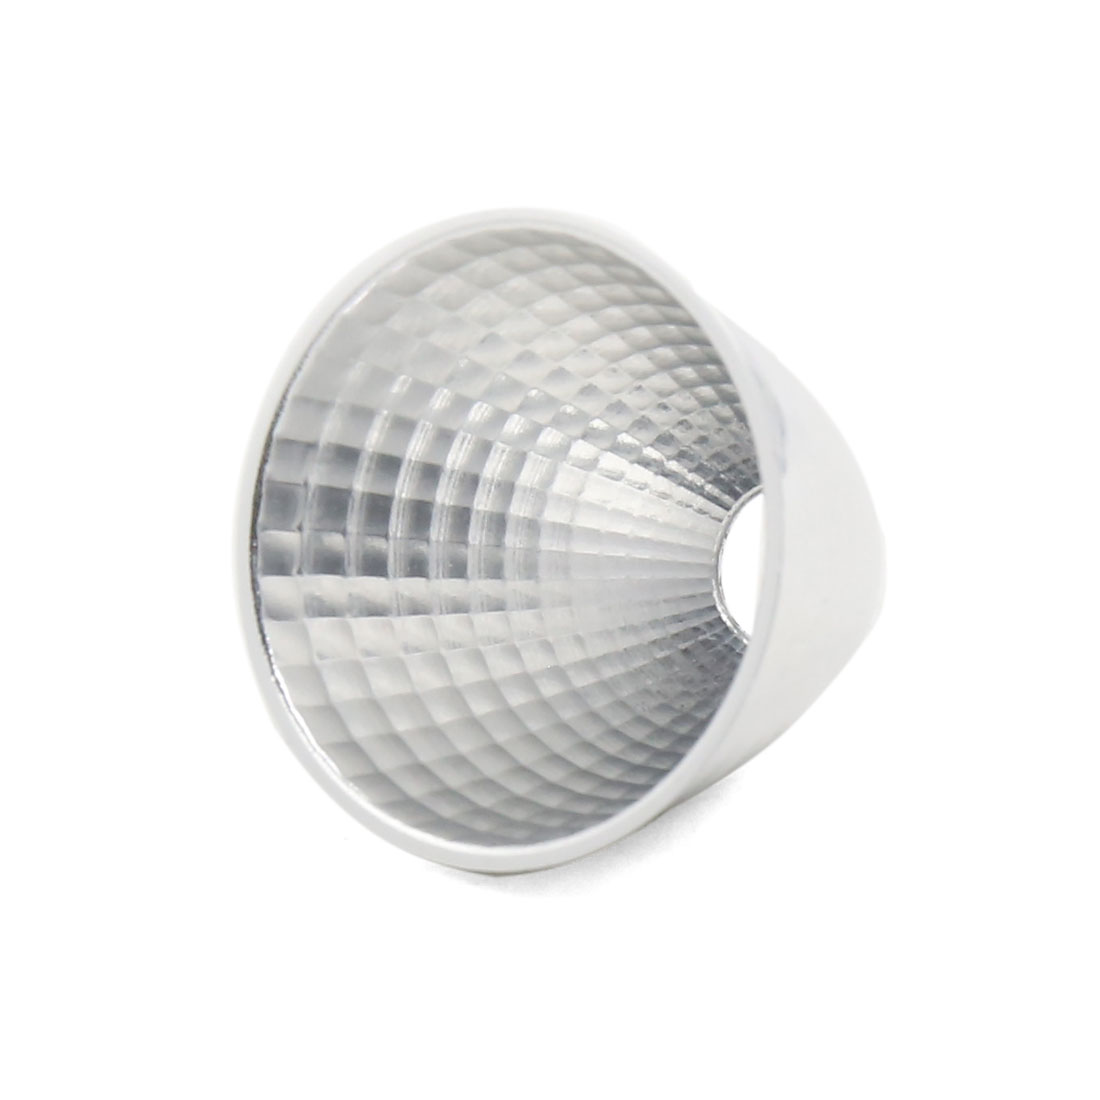 Silver Tone 45mm Diameter LED Lamp Flashlight Reflector Collimator Holder